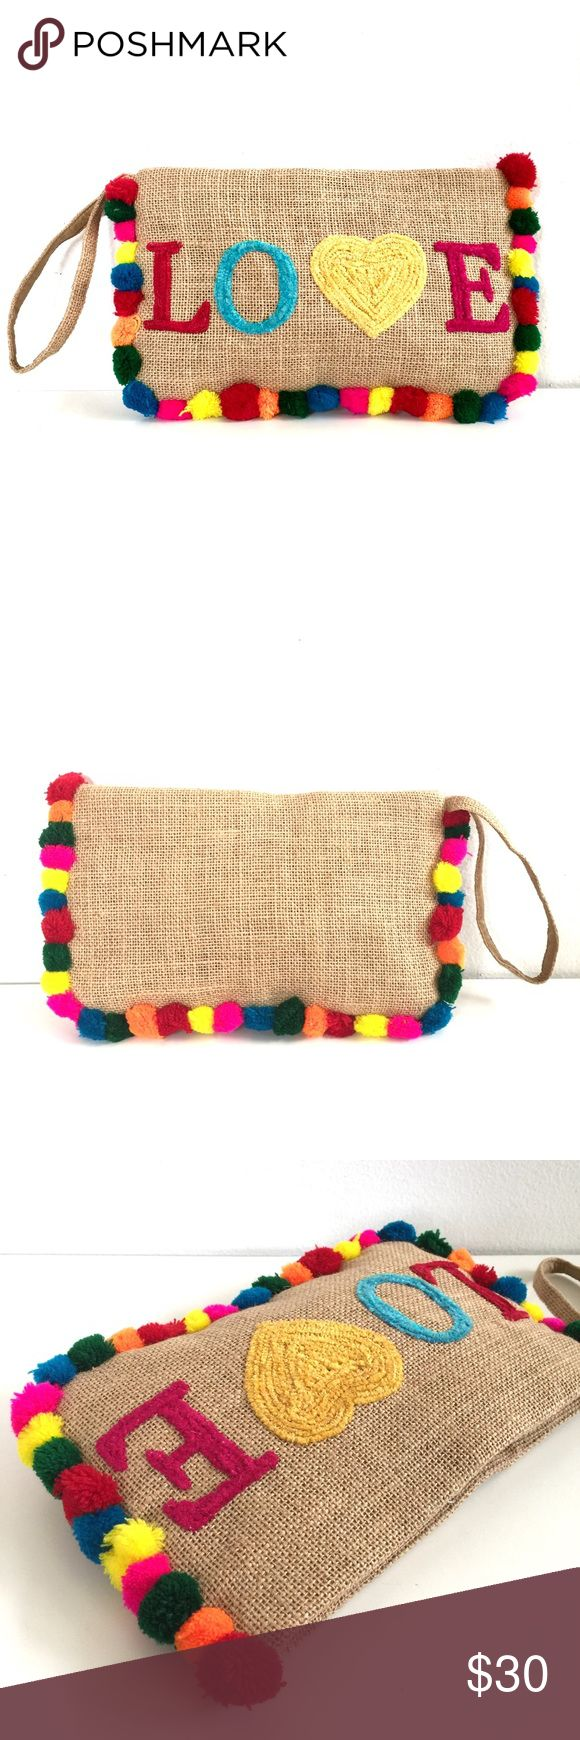 "Moyna Boho Bright Pom Pom Love Clutch Wristlet Sweet Moyna clutch bag. Bright multicolored pom poms and LOVE embroidery. This line is carried at Anthro and ASOS. New with tags. Apx 11"" x 6 1/2"" Anthropologie Bags Clutches & Wristlets"